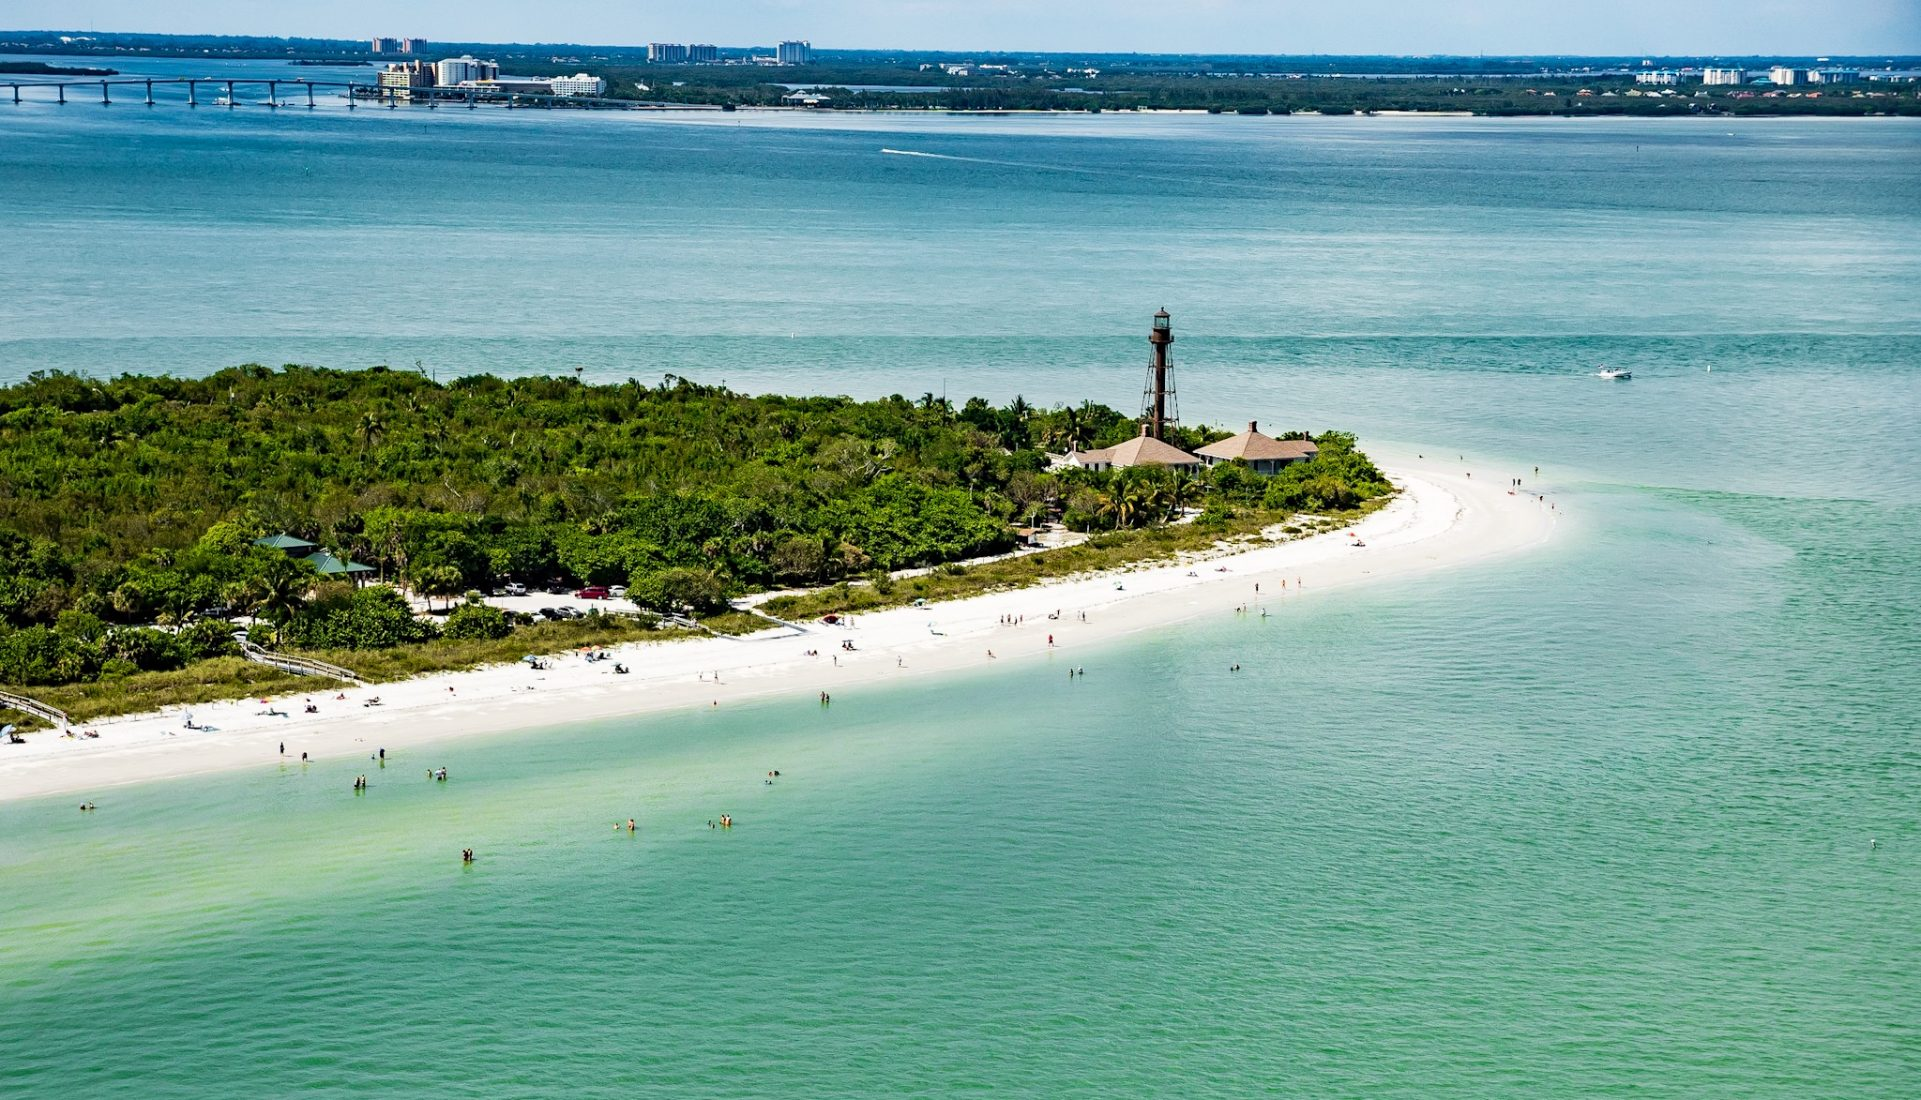 Sanibel Island Light and Boca Grande Lighthouse stand as sentinels for Pine Island Sound